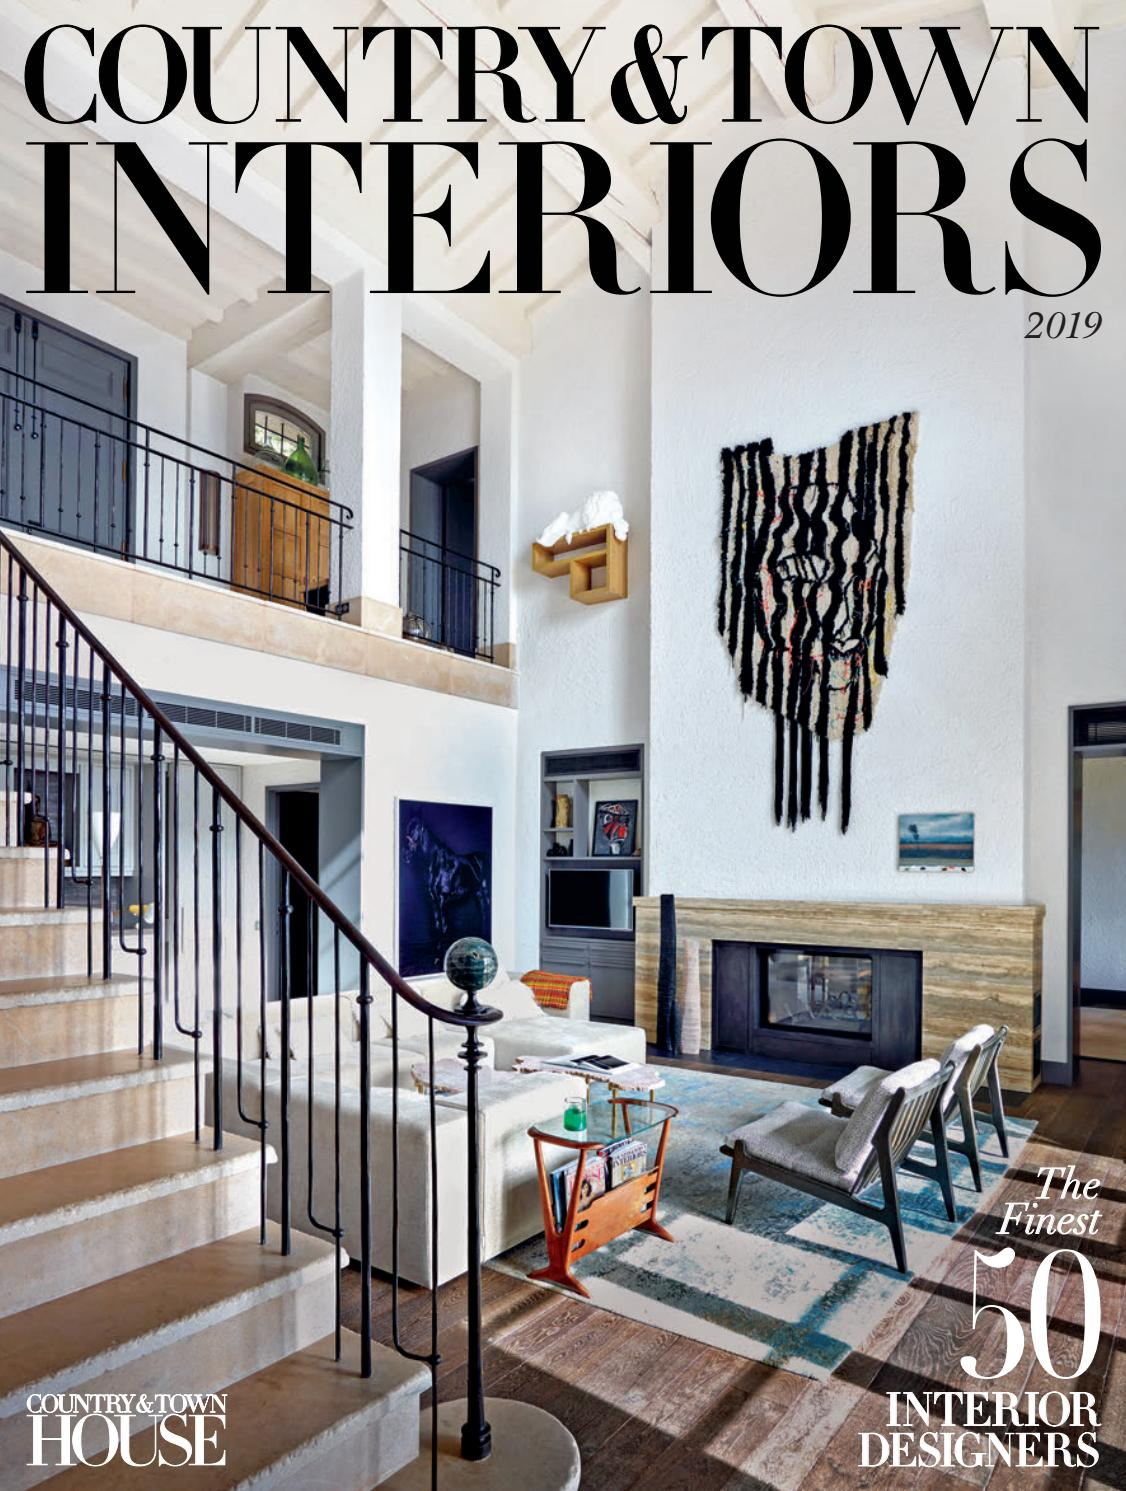 majestic interiors pany profile interior designers in online interior design firms Country u0026 Town Interiors 2019 by Country u0026 Town House Magazine - issuu